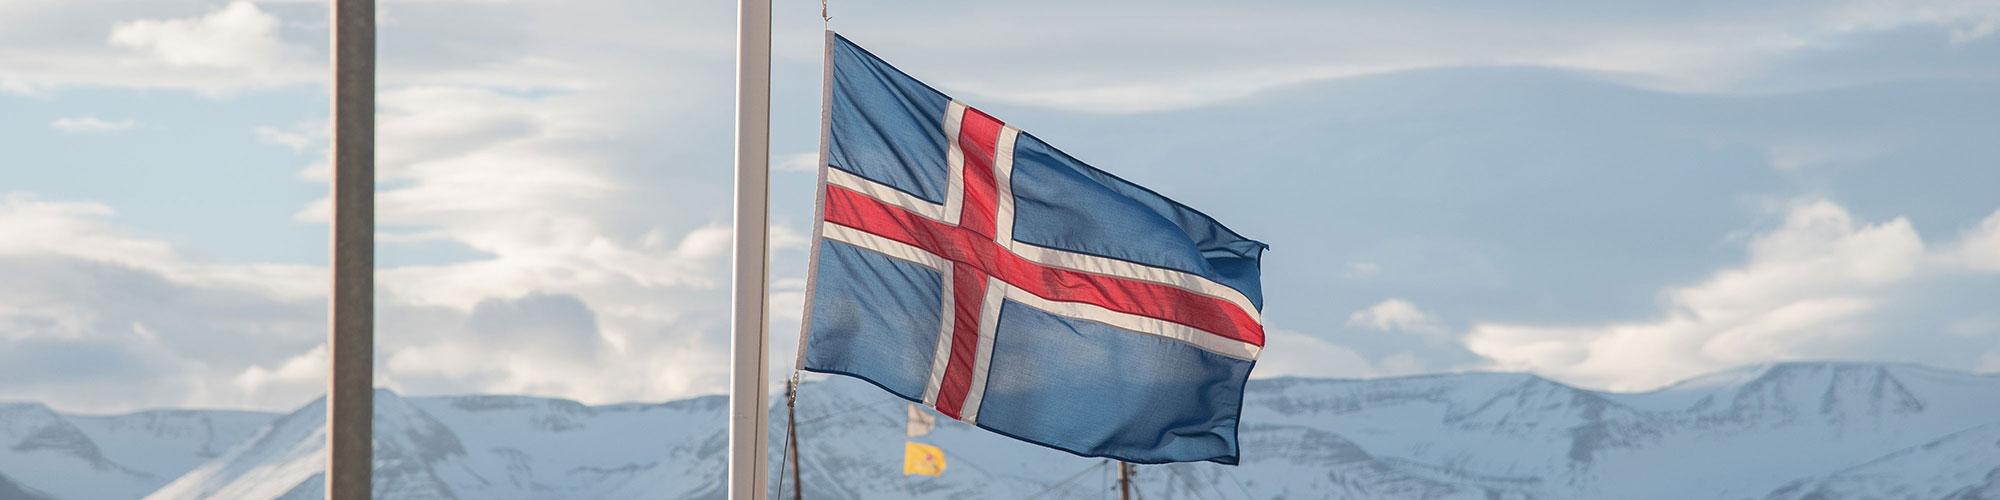 Icelandic Translation Service Flag in Snow Mountains of Iceland